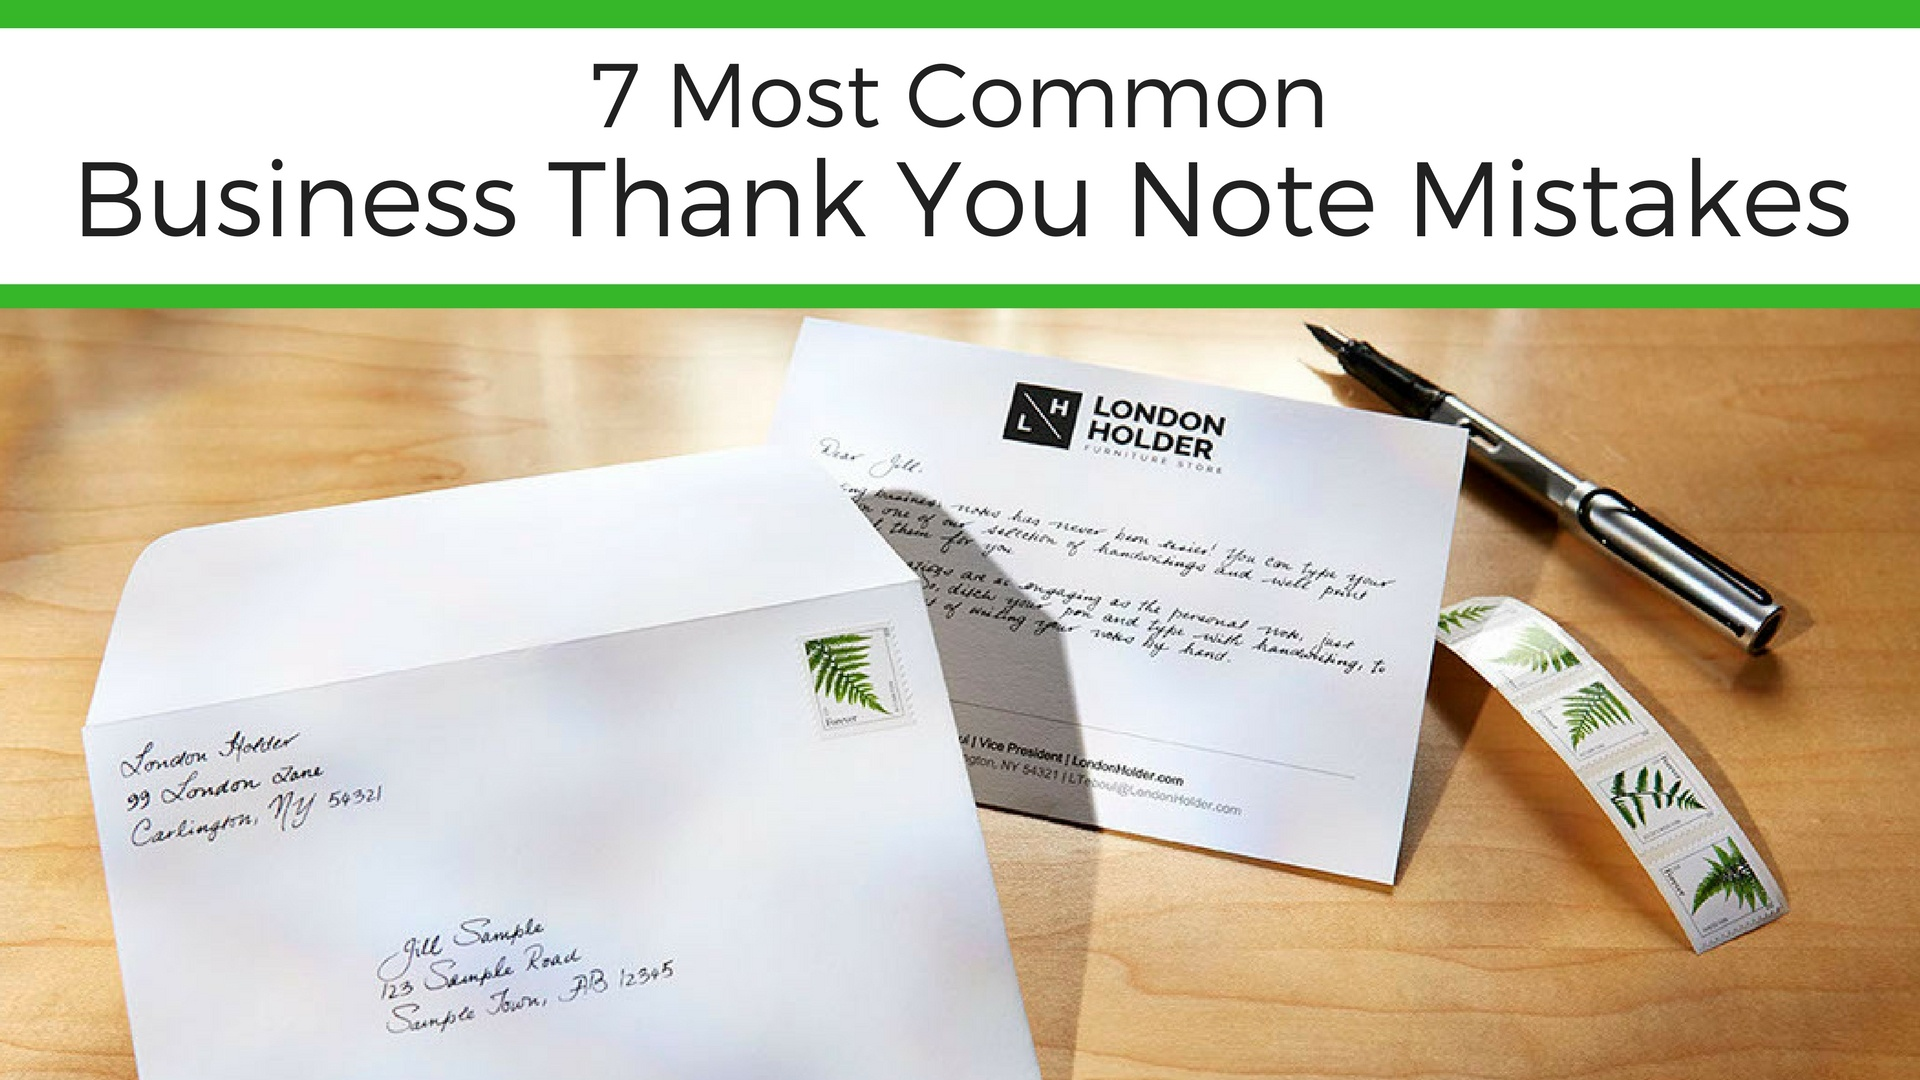 7 Most Common Business Thank You Note Mistakes